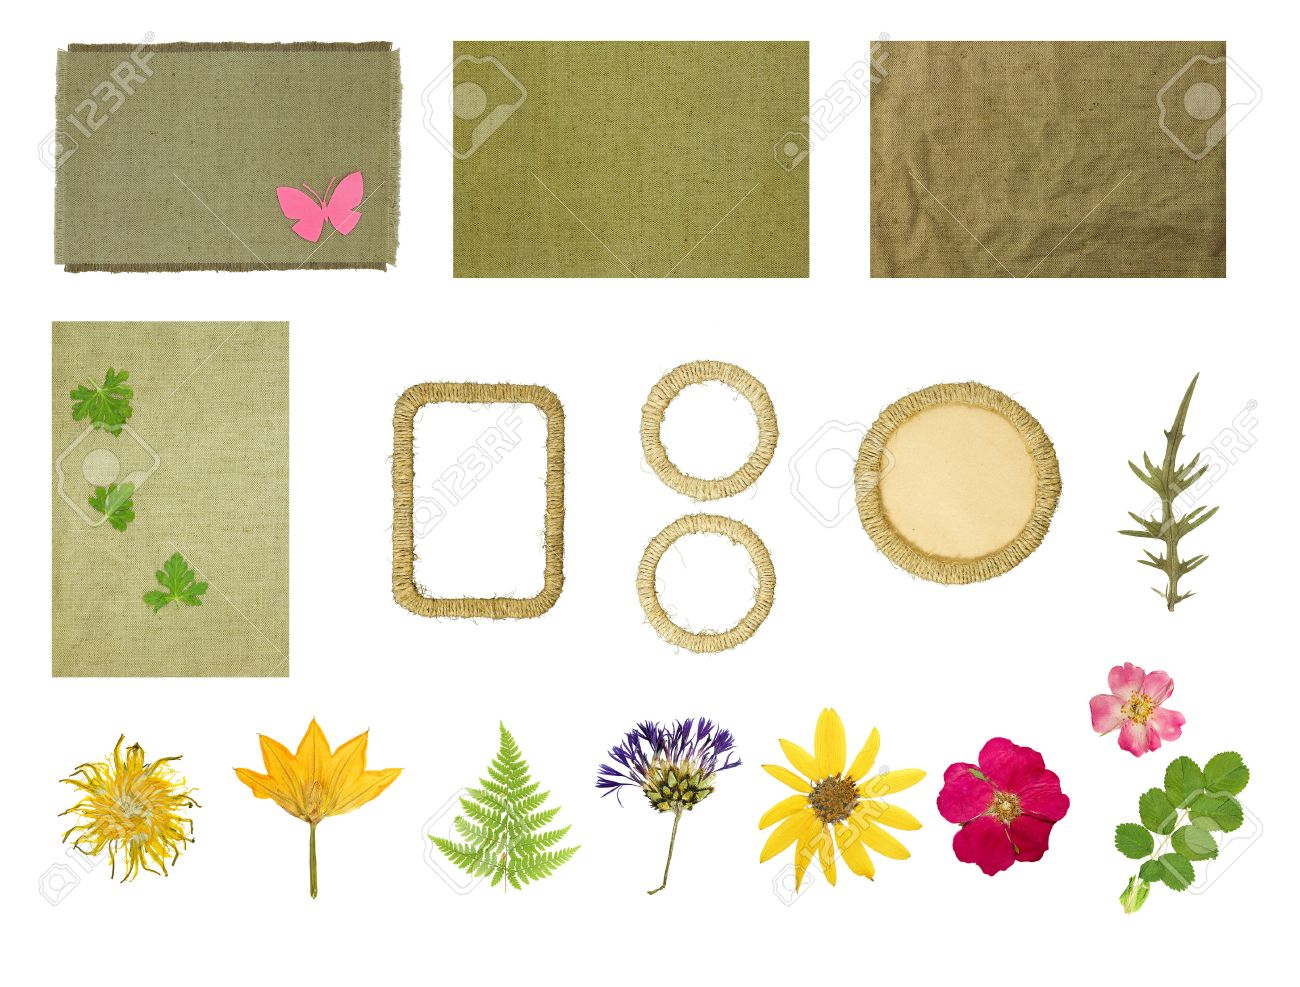 How to scrapbook pressed flowers - Set Elements For Scrapbooking Frames Braided Jute Thread Dried Pressed Flowers Objects Isolated